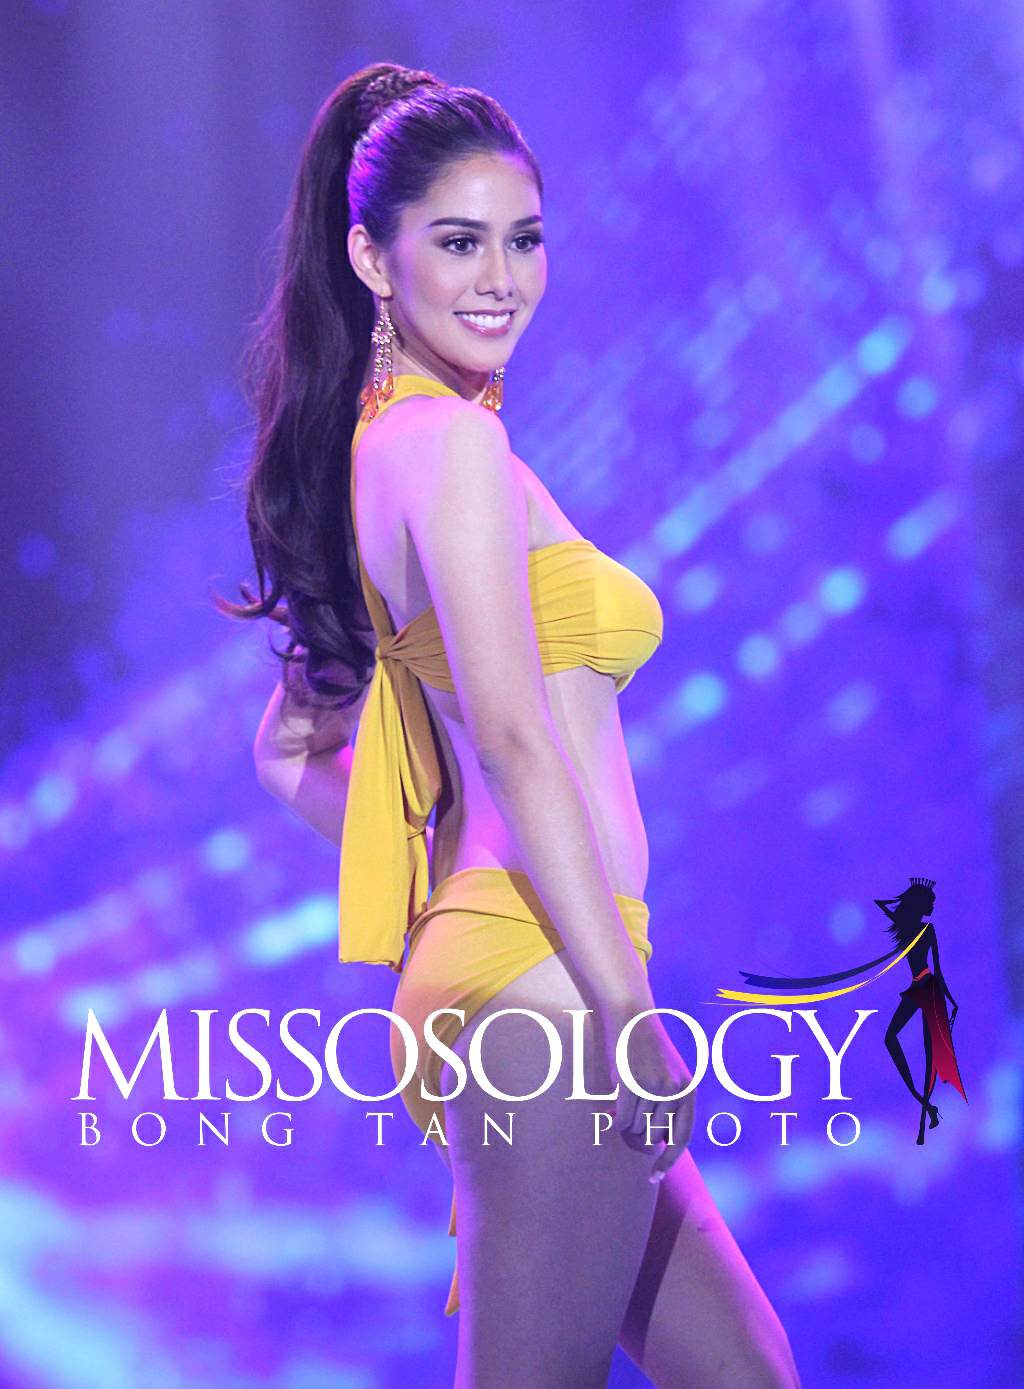 1st Miss Universe >> IN PHOTOS – Bb. Pilipinas 2018 semifinalists in their swimsuit - Missosology